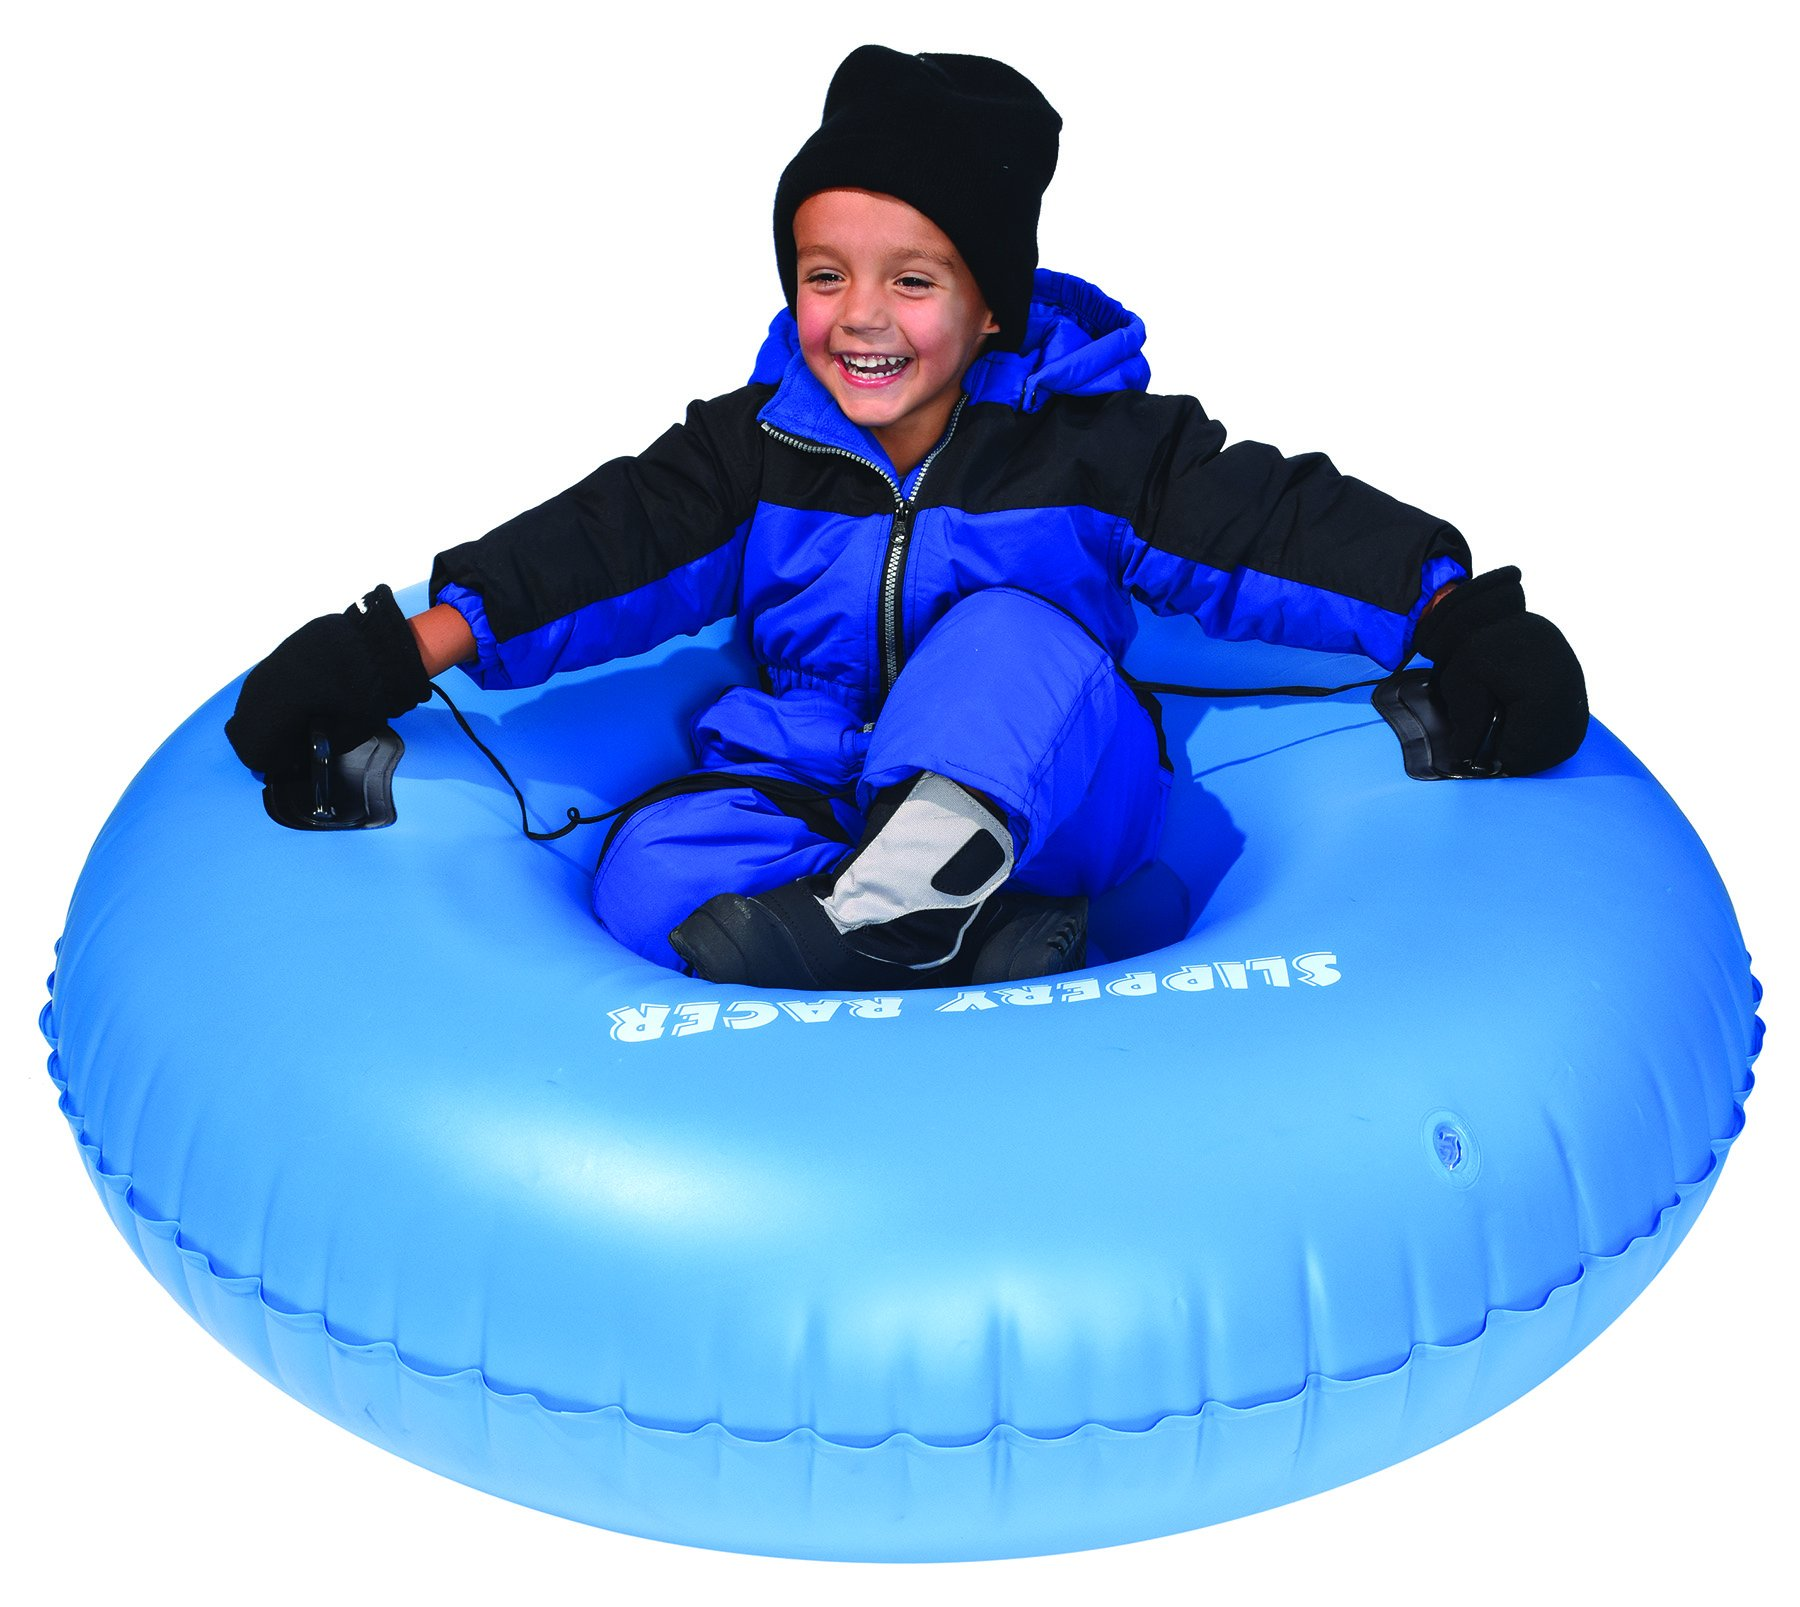 Slippery Racer Airraid Inflatable Snow Tube Sled, Blue by Slippery Racer